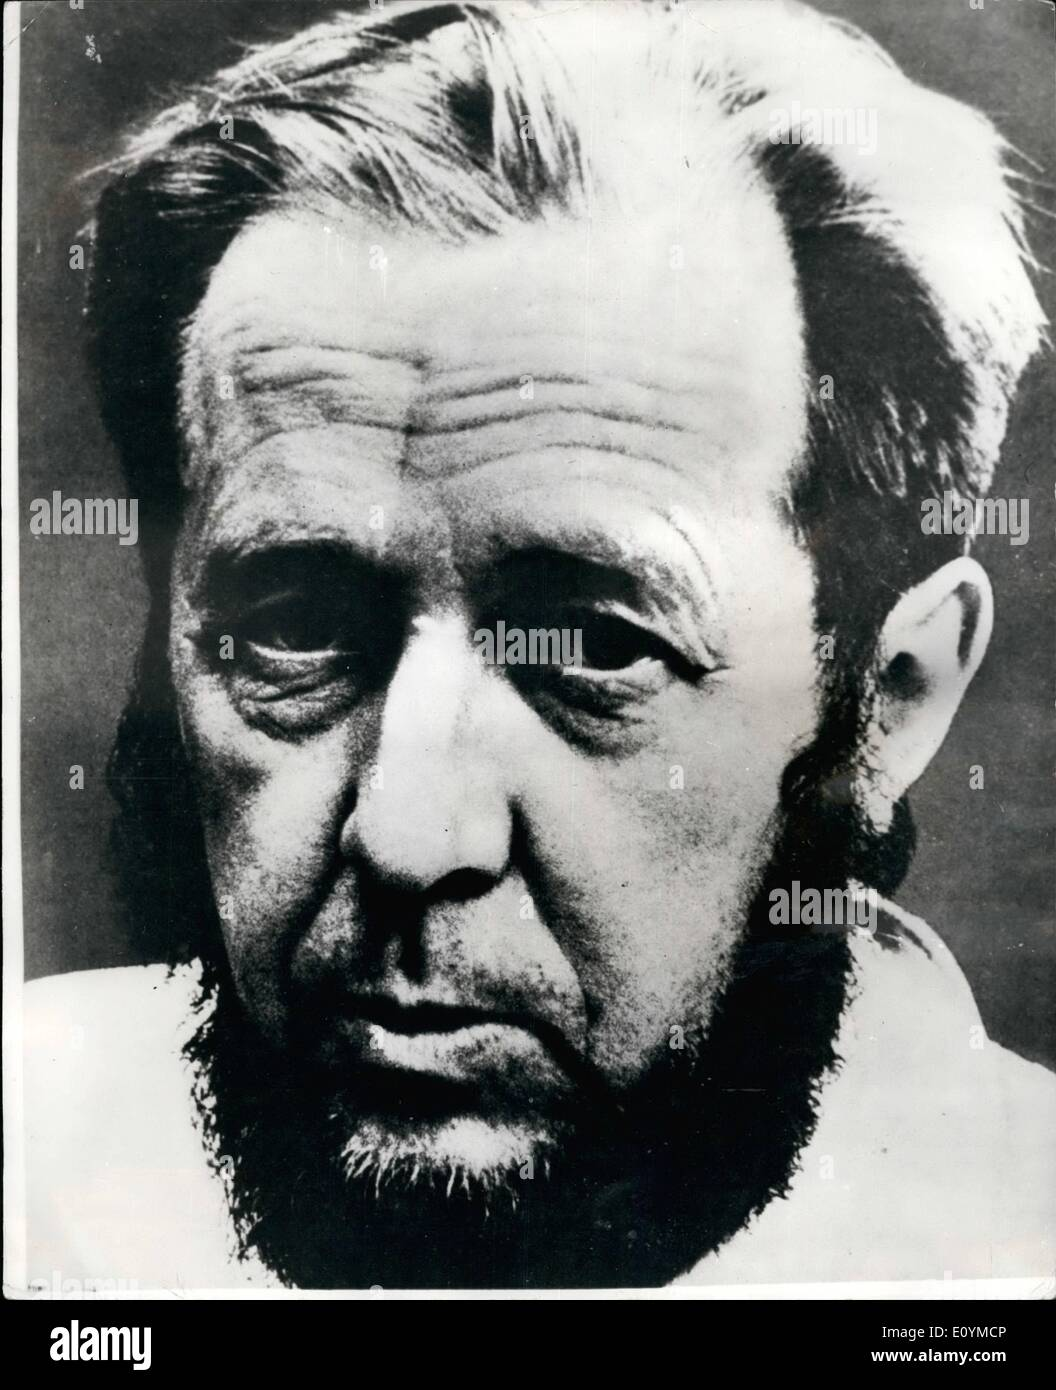 Oct. 09, 1970 - October 9th - 1980 Rebel Russian Author is awarded the 1970 Nobel prize in literature. The Swedish Academy awarded the 1970 Nobel Prize in Literature yesterday to the 51 - year old rebel Russian writer Alexander Solzhenitysyn , author of ''Cancer Ward'', ''The First Circle'' and ''One day in the life of Ivan Denisovich'' . The prize of ?32,000 was given ''for the ethical force with which he has pursued the ethical force with which he has pursued the indispensable traditional of Russian literature. Photo shows Alexander Solzhenitsyn awarded the 1970 Nobel prize in Literature - Stock Image